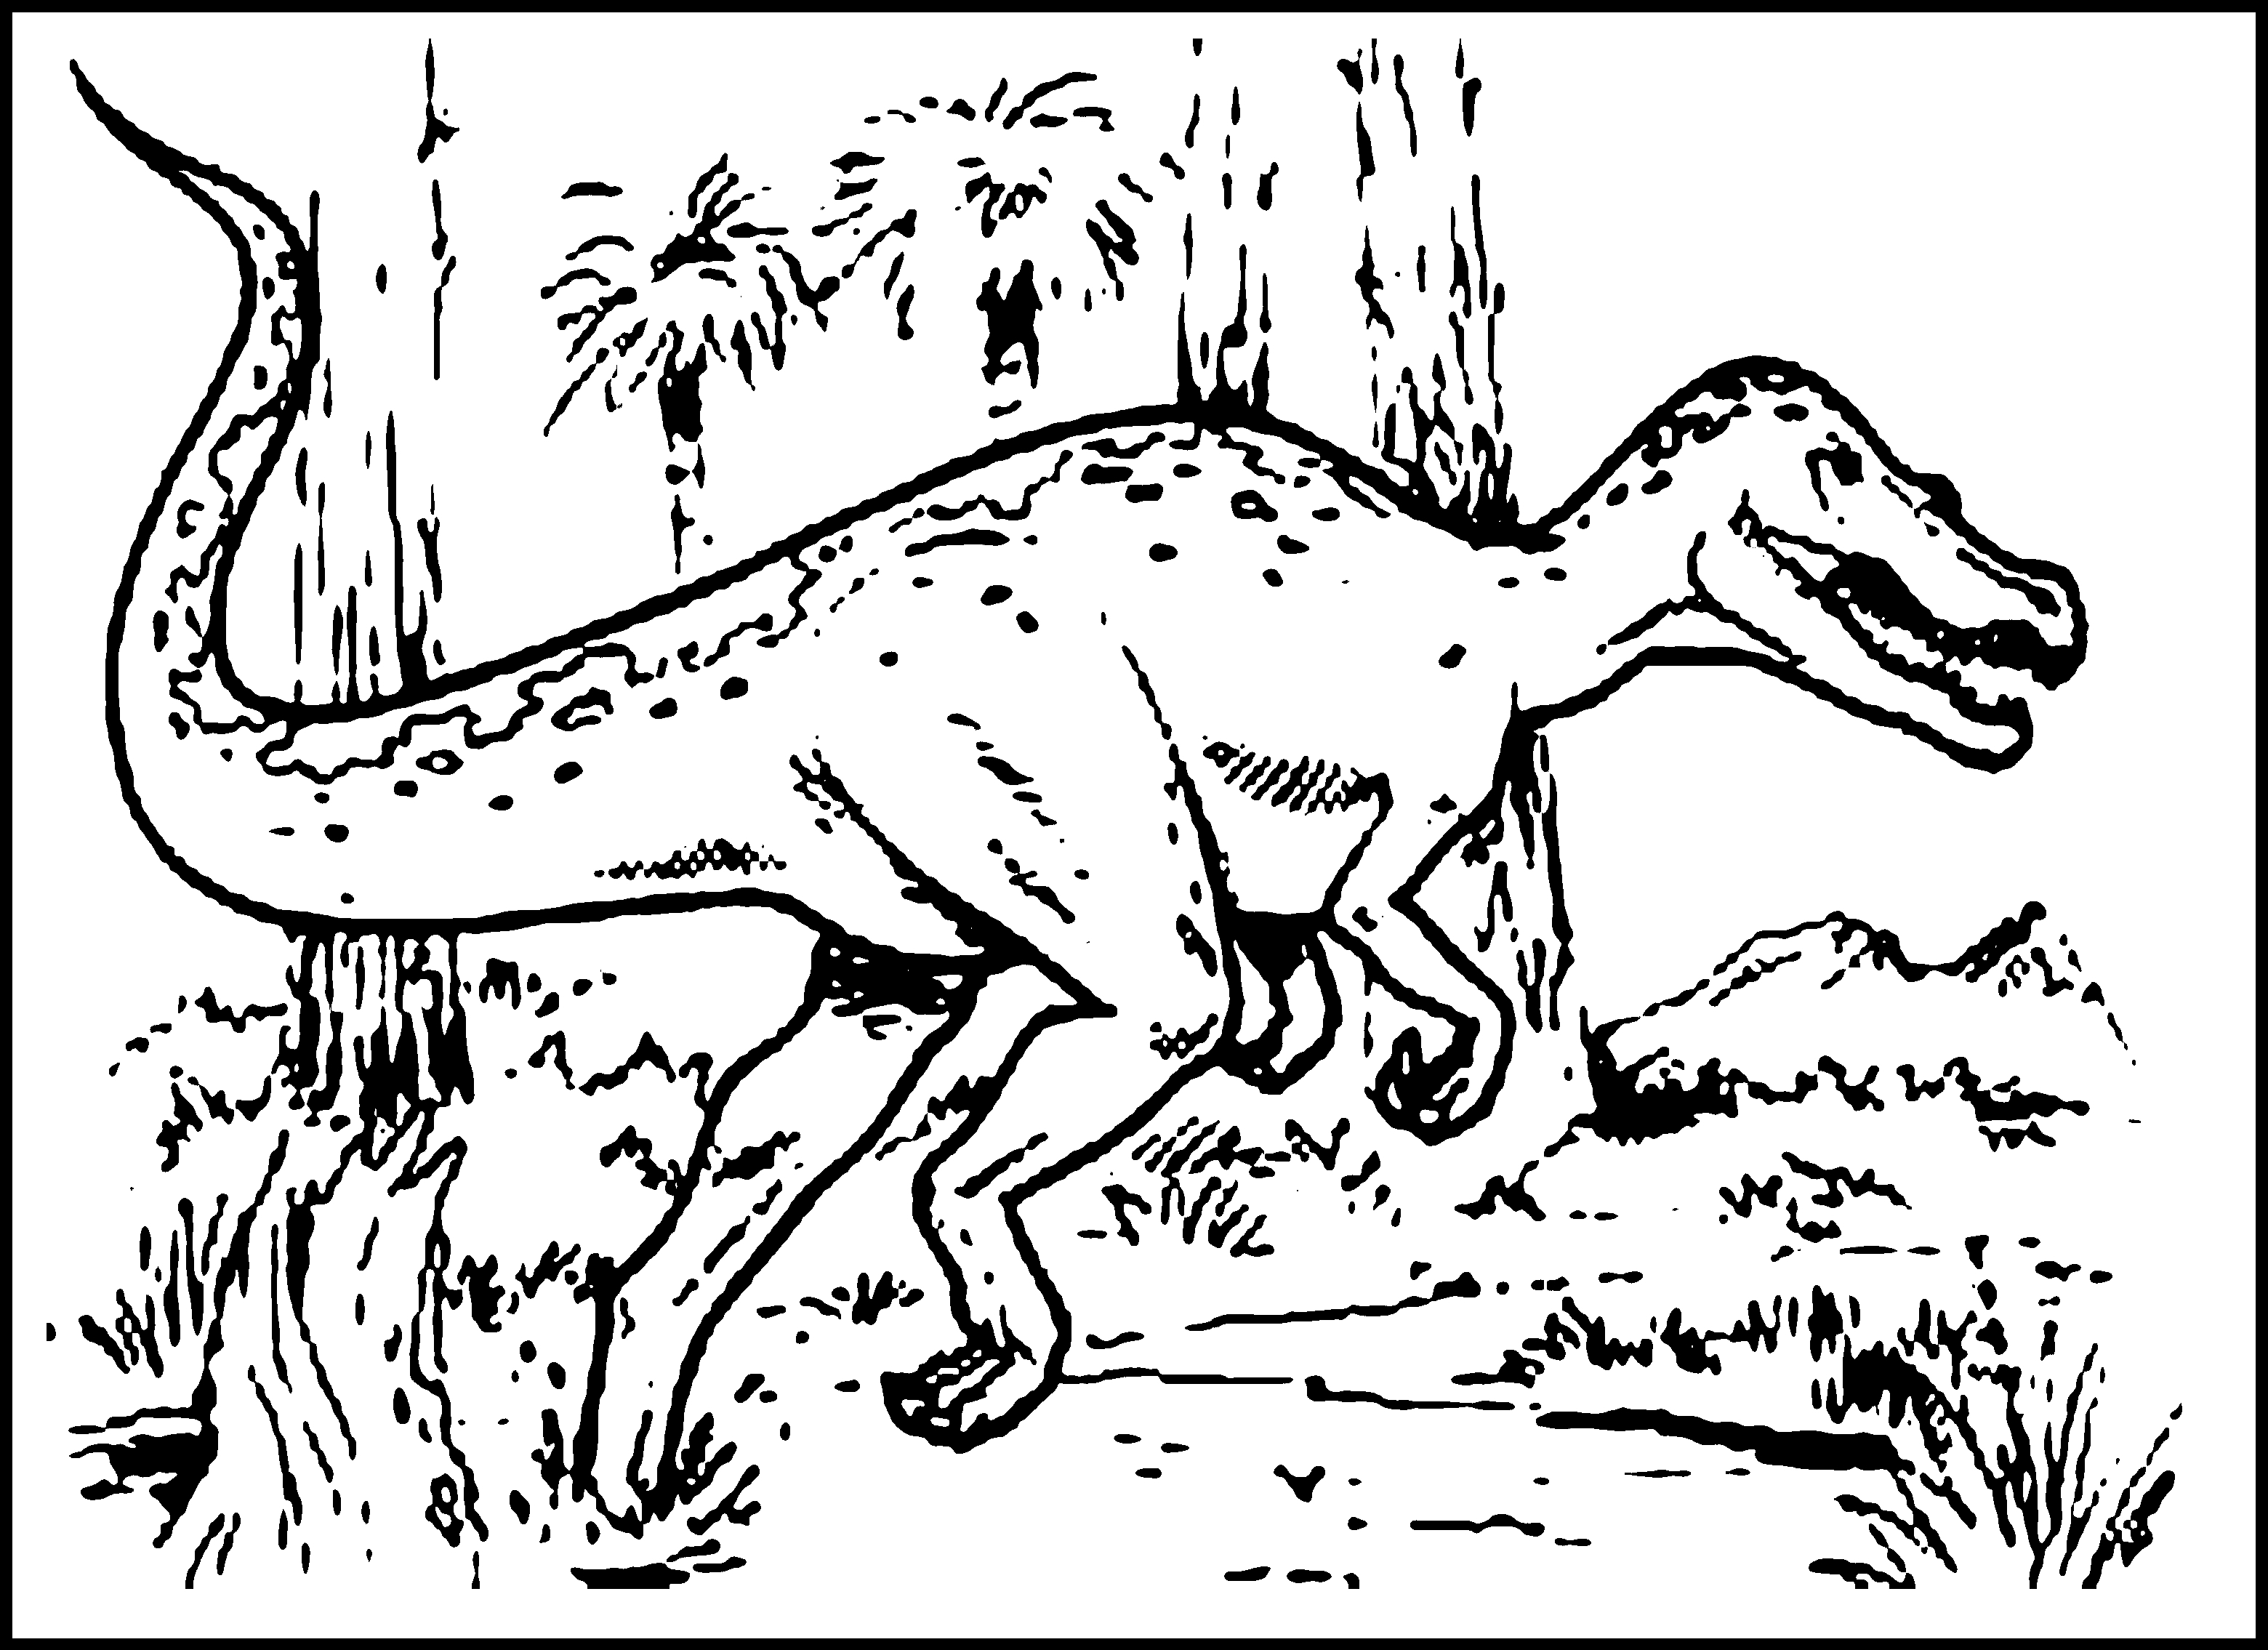 pictures of dinosaurs to print coloring pages dinosaur free printable coloring pages dinosaurs of to pictures print